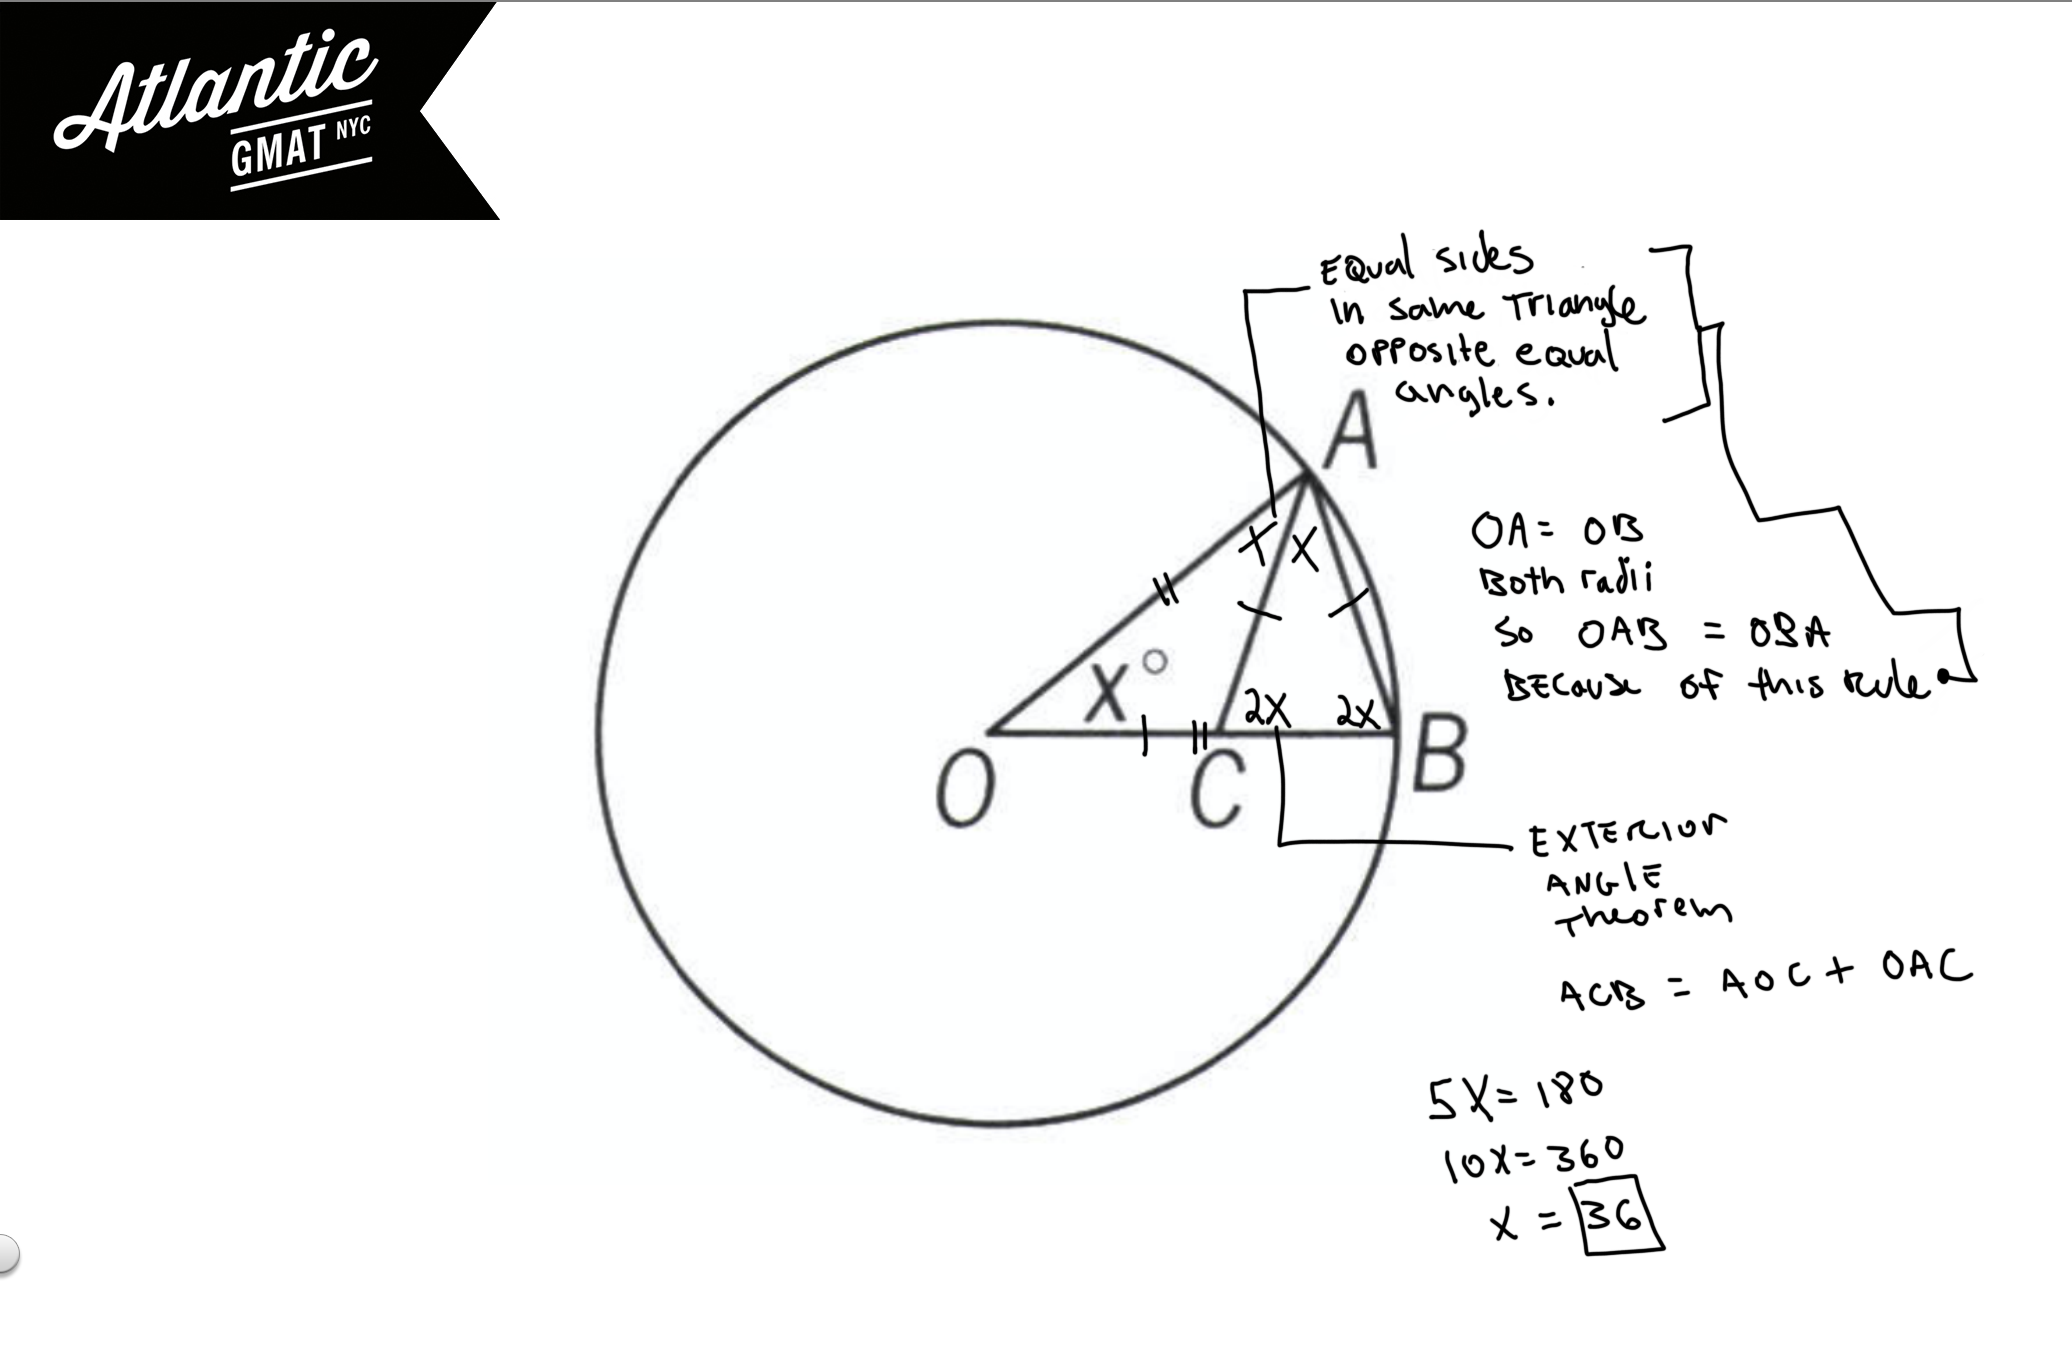 In the figure above, point O is the center of the circle and OC = AC = AB. What is the value of x? Solution